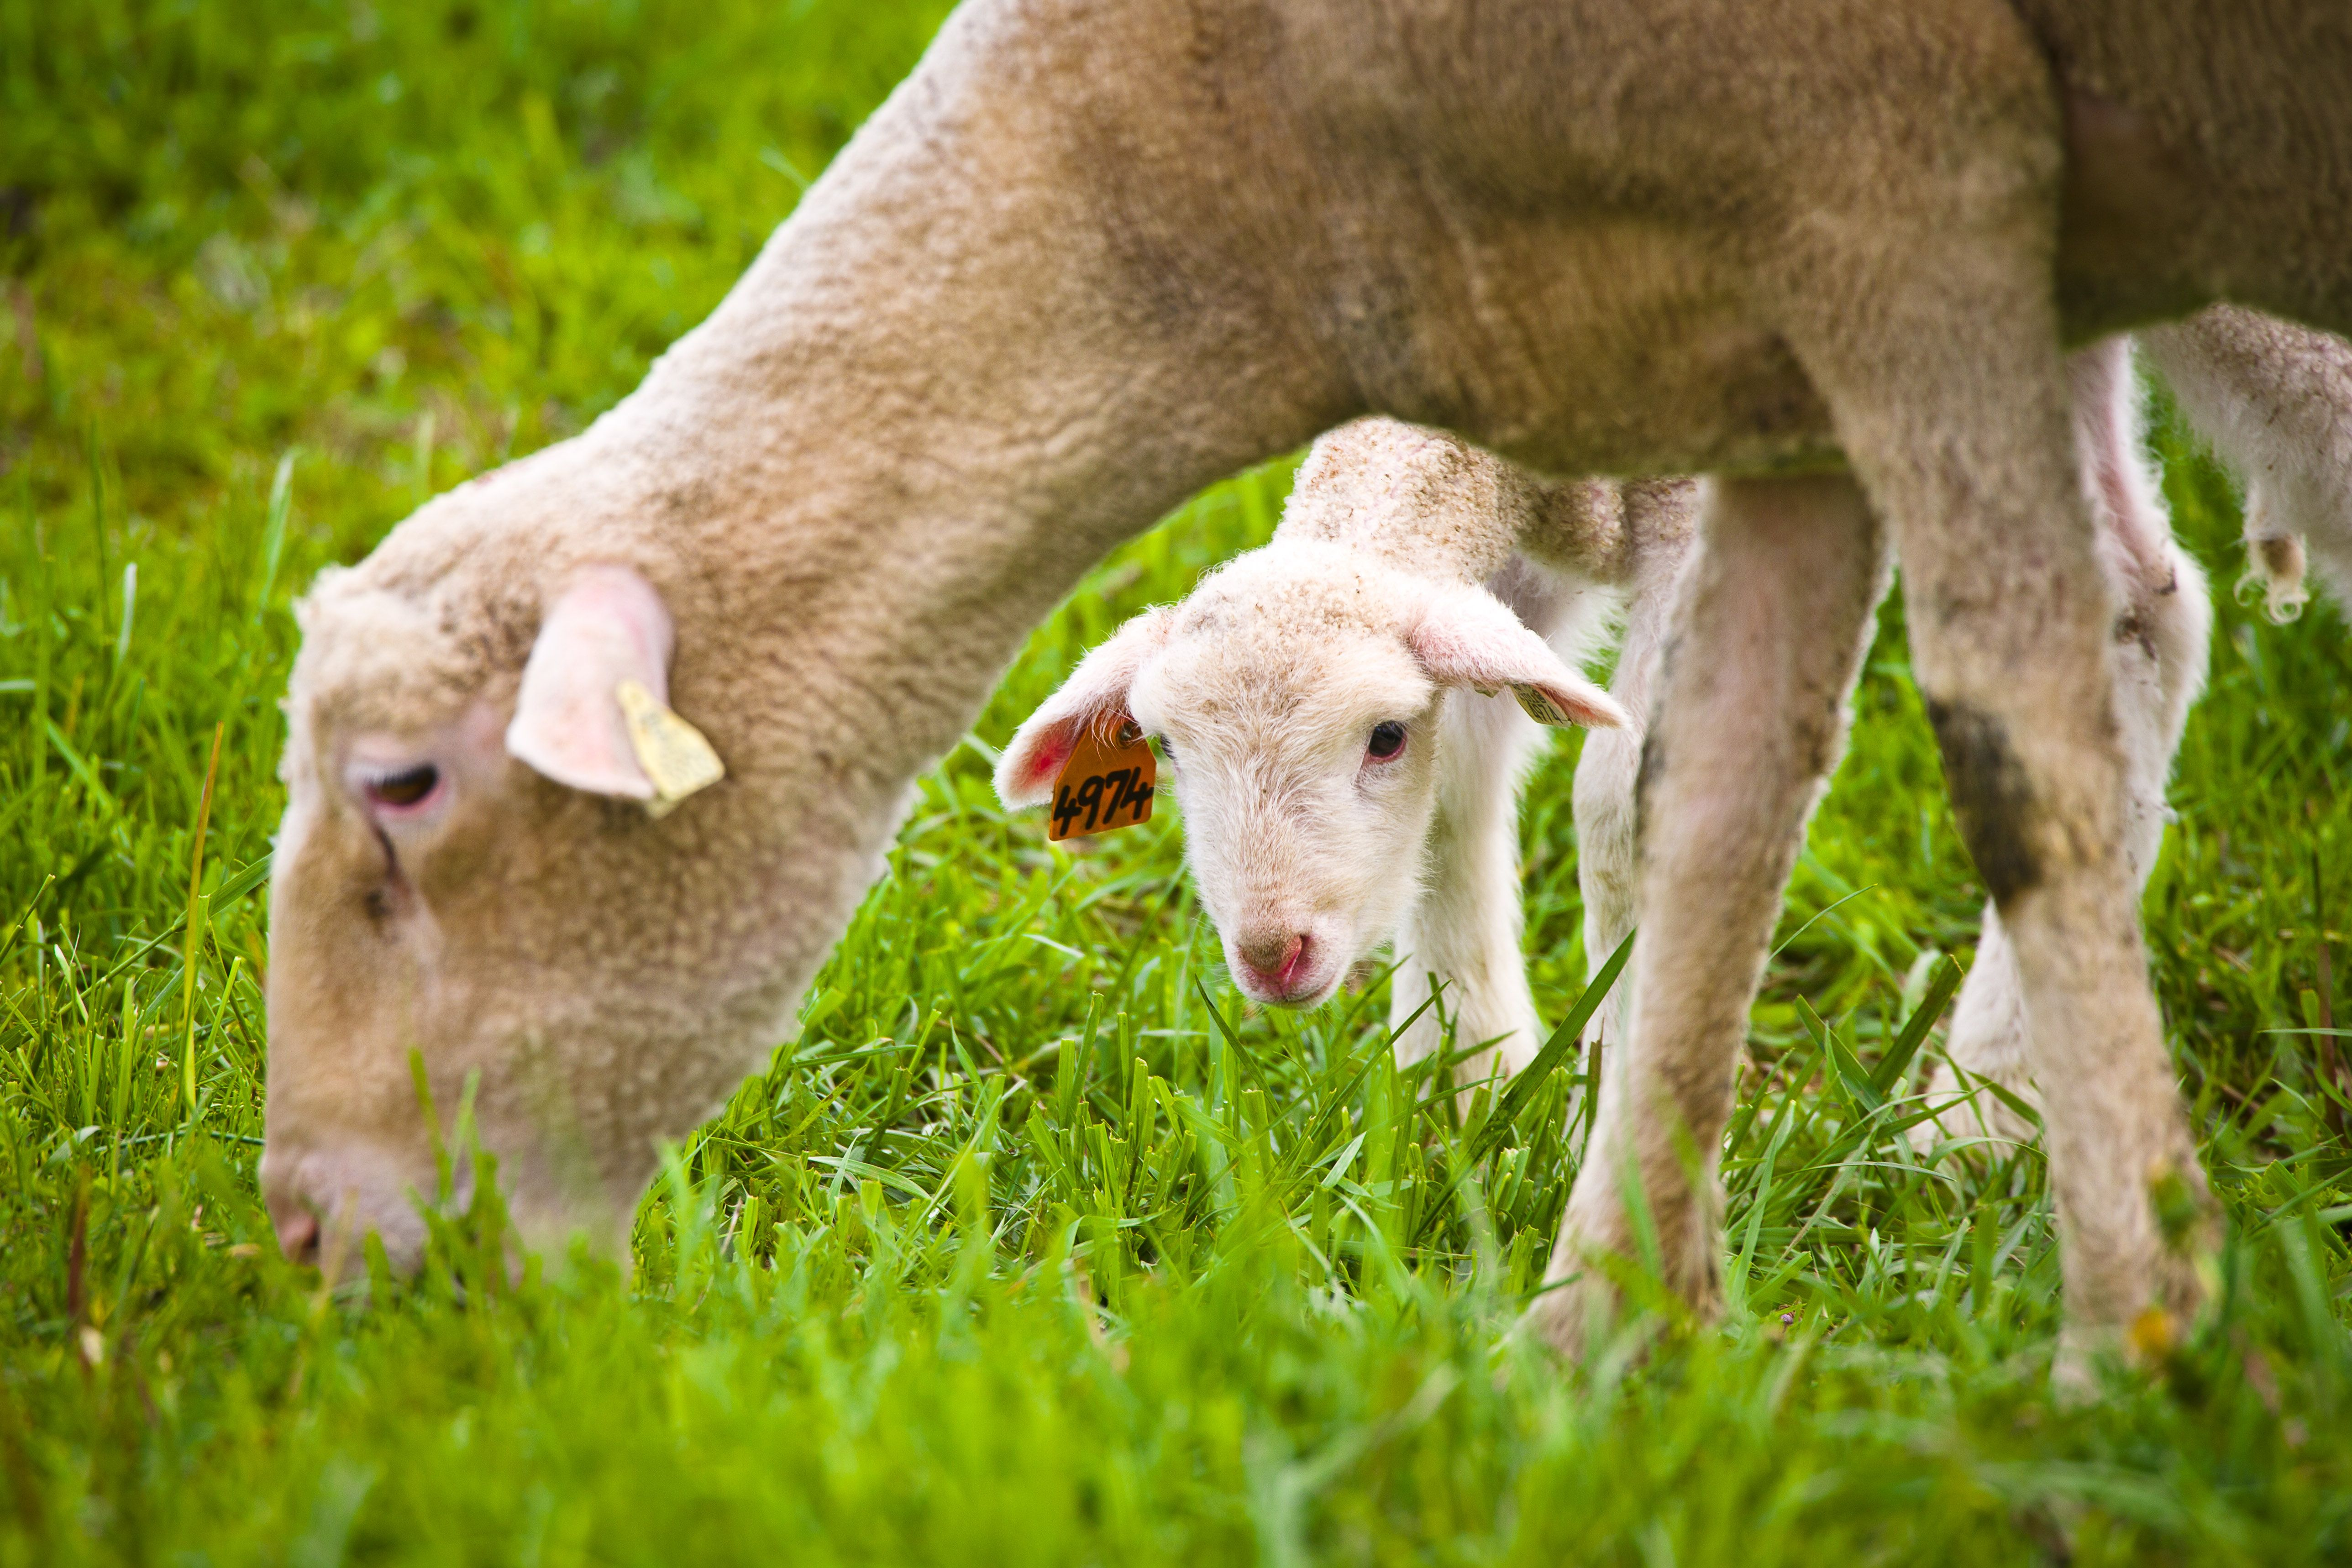 Small Ruminant Grazing Conference set for Feb. 23 in Morehead